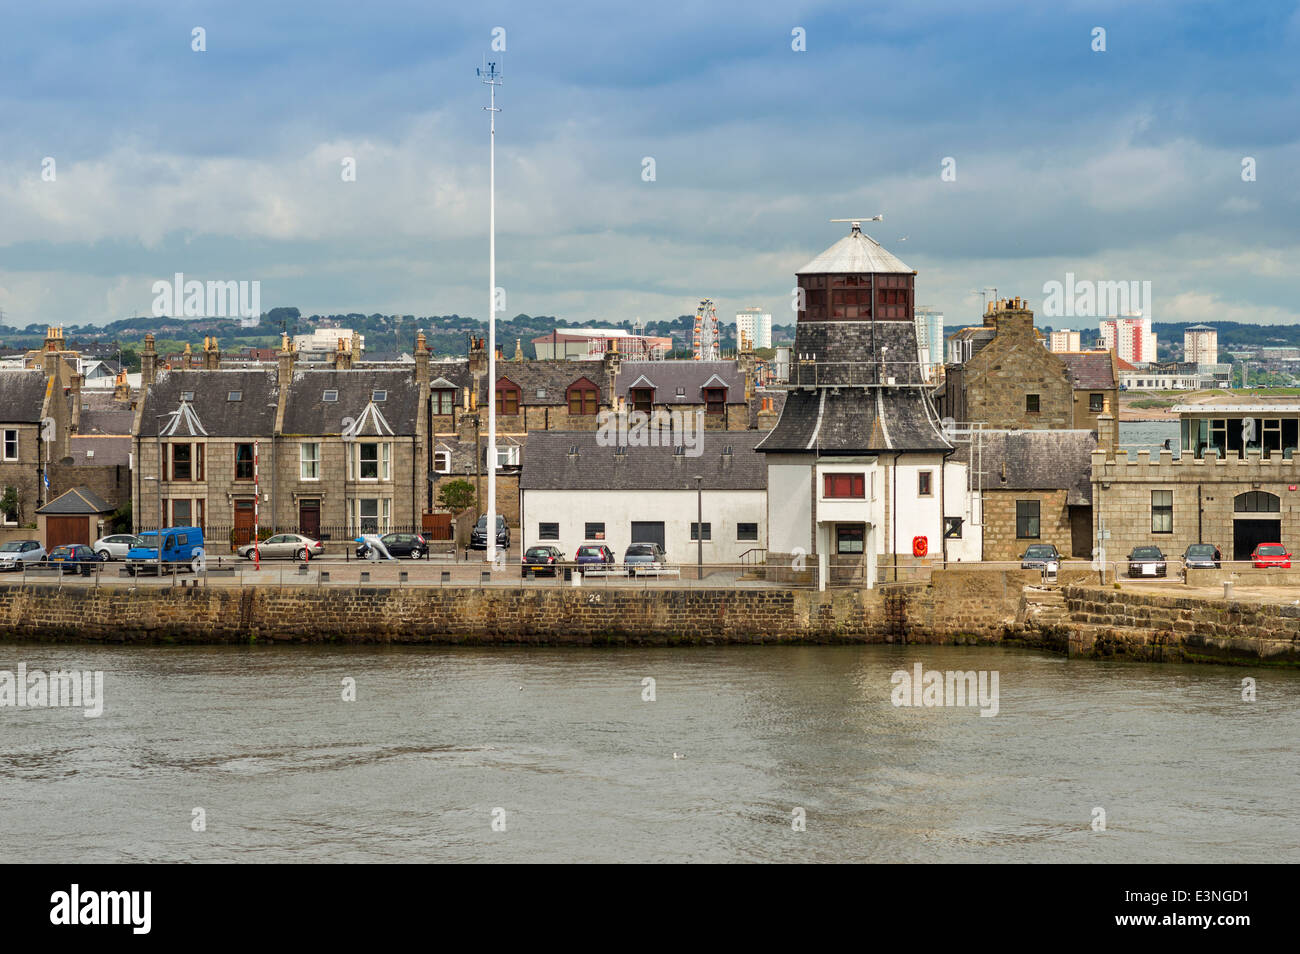 OLD ROUNDHOUSE ON ABERDEEN HARBOUR NORTH PIER SCOTLAND - Stock Image